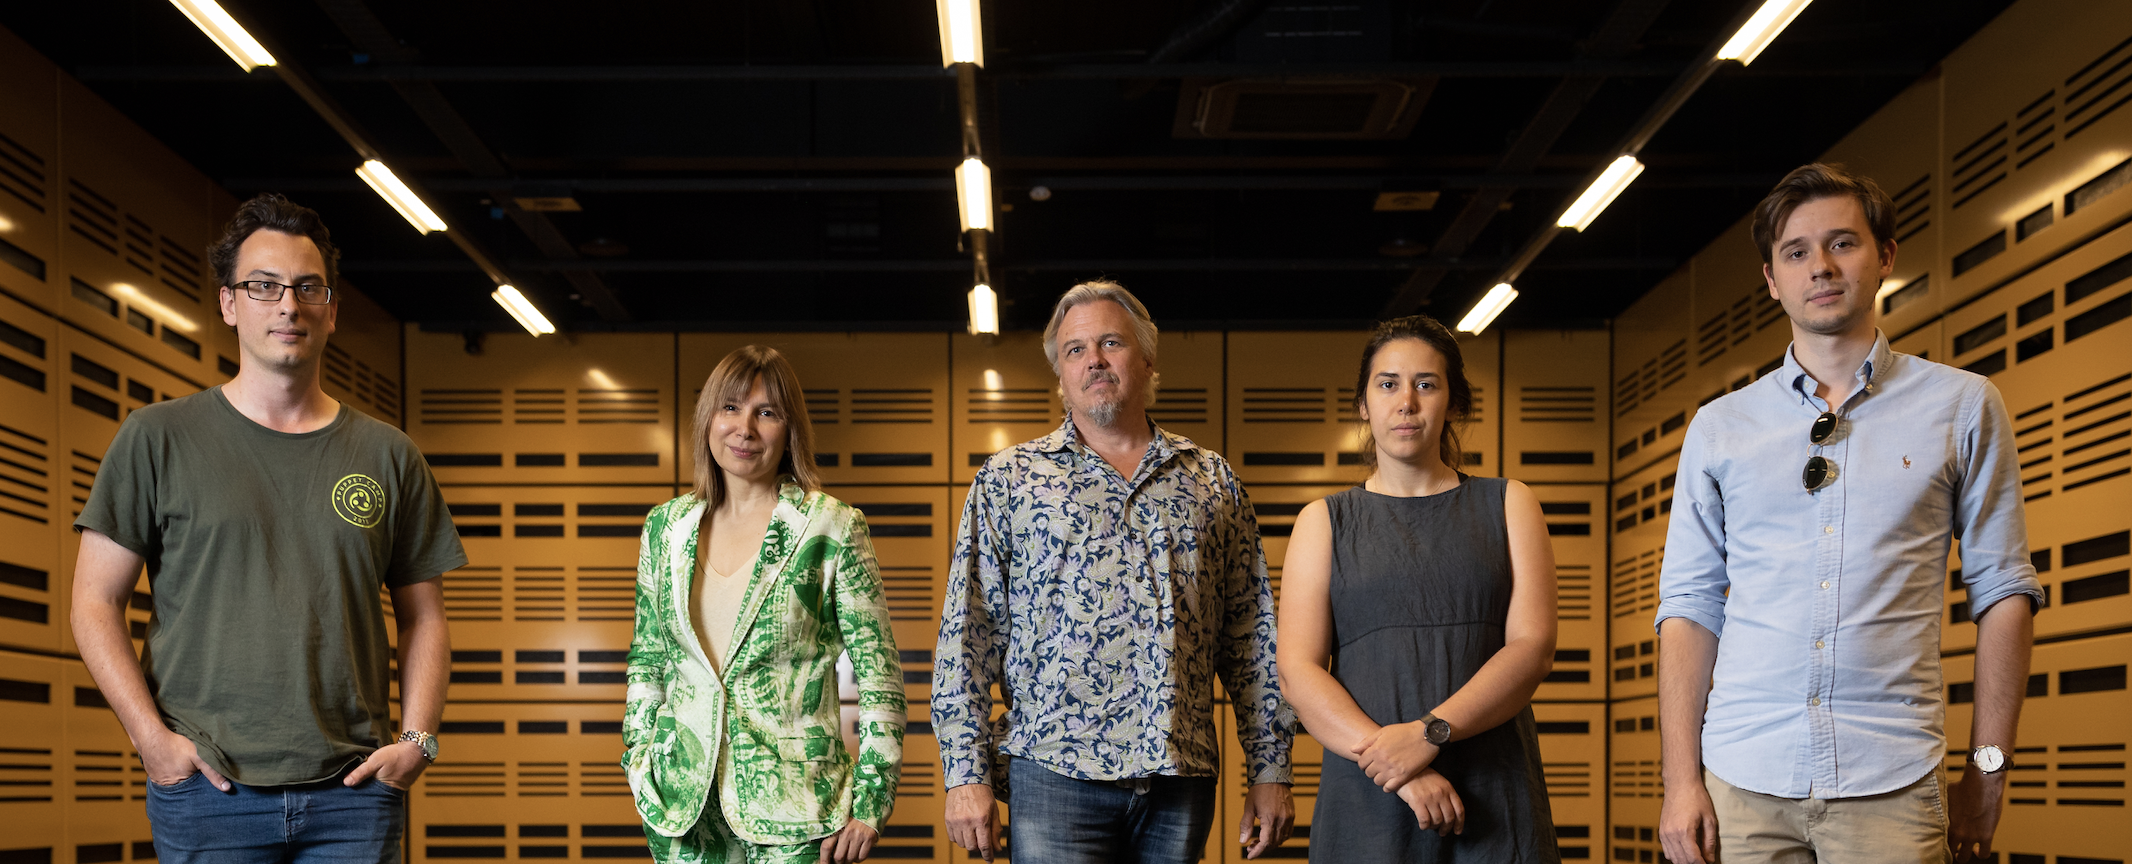 The team from the National Facility for Human Robot Interaction Research and the Creative Robotics Lab at UNSW was awarded a grant that will enhance the cognitive performance and resilience of troops in the Australian Army.